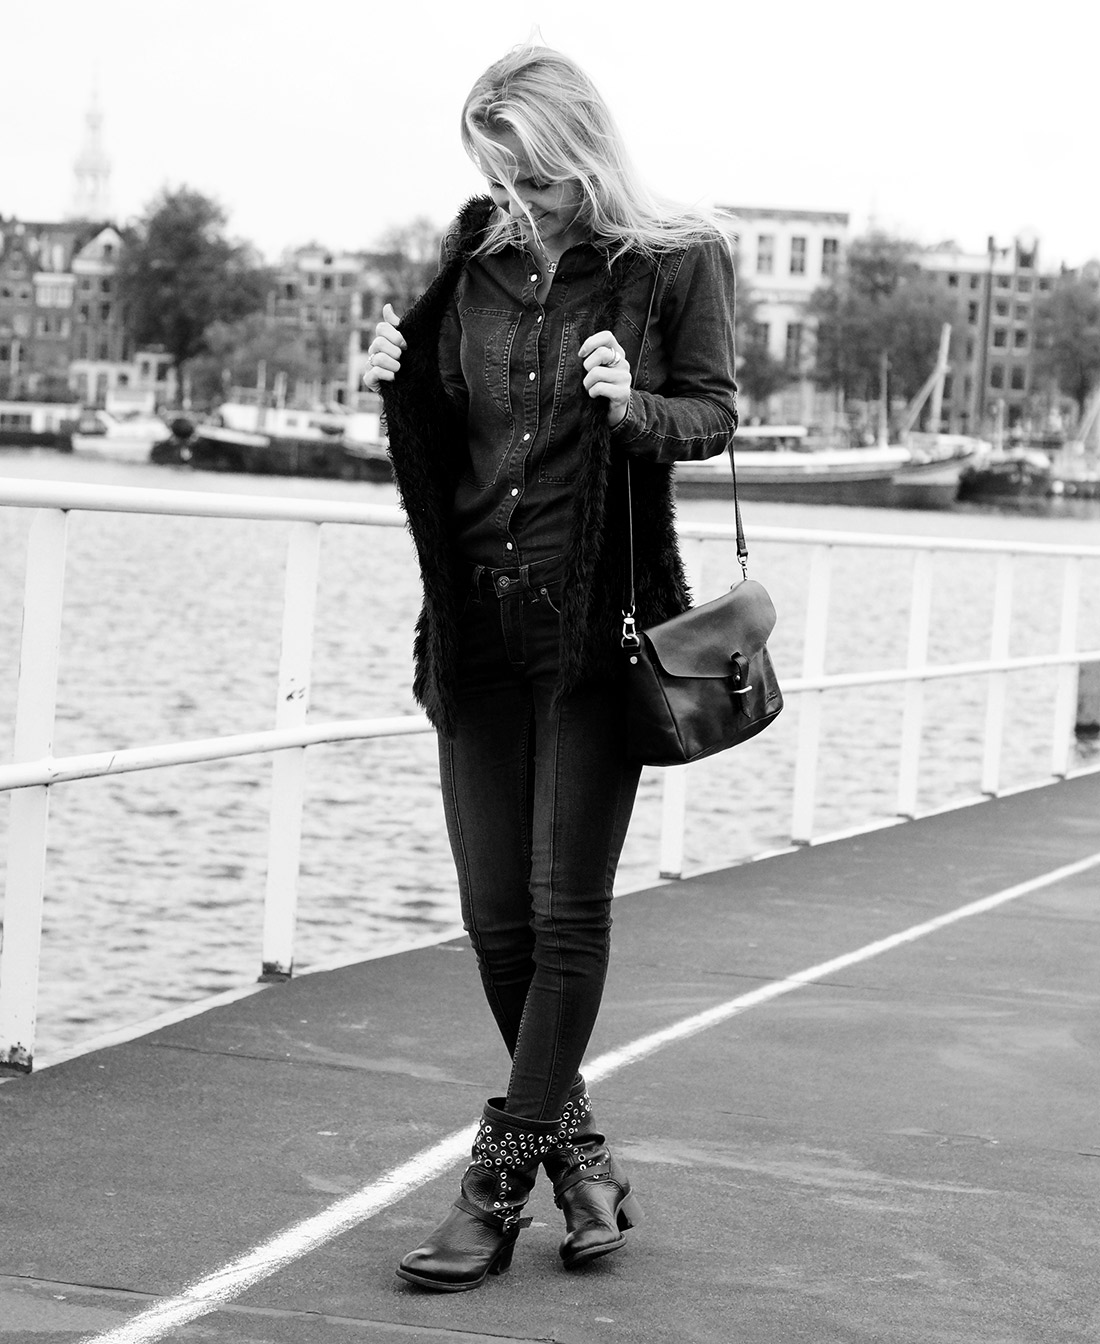 Bag-at-You---Fashion-blog---Lena-the-fashion-library---All-Denim-suit---O-My-Bag-bag---Black-boots---Featured